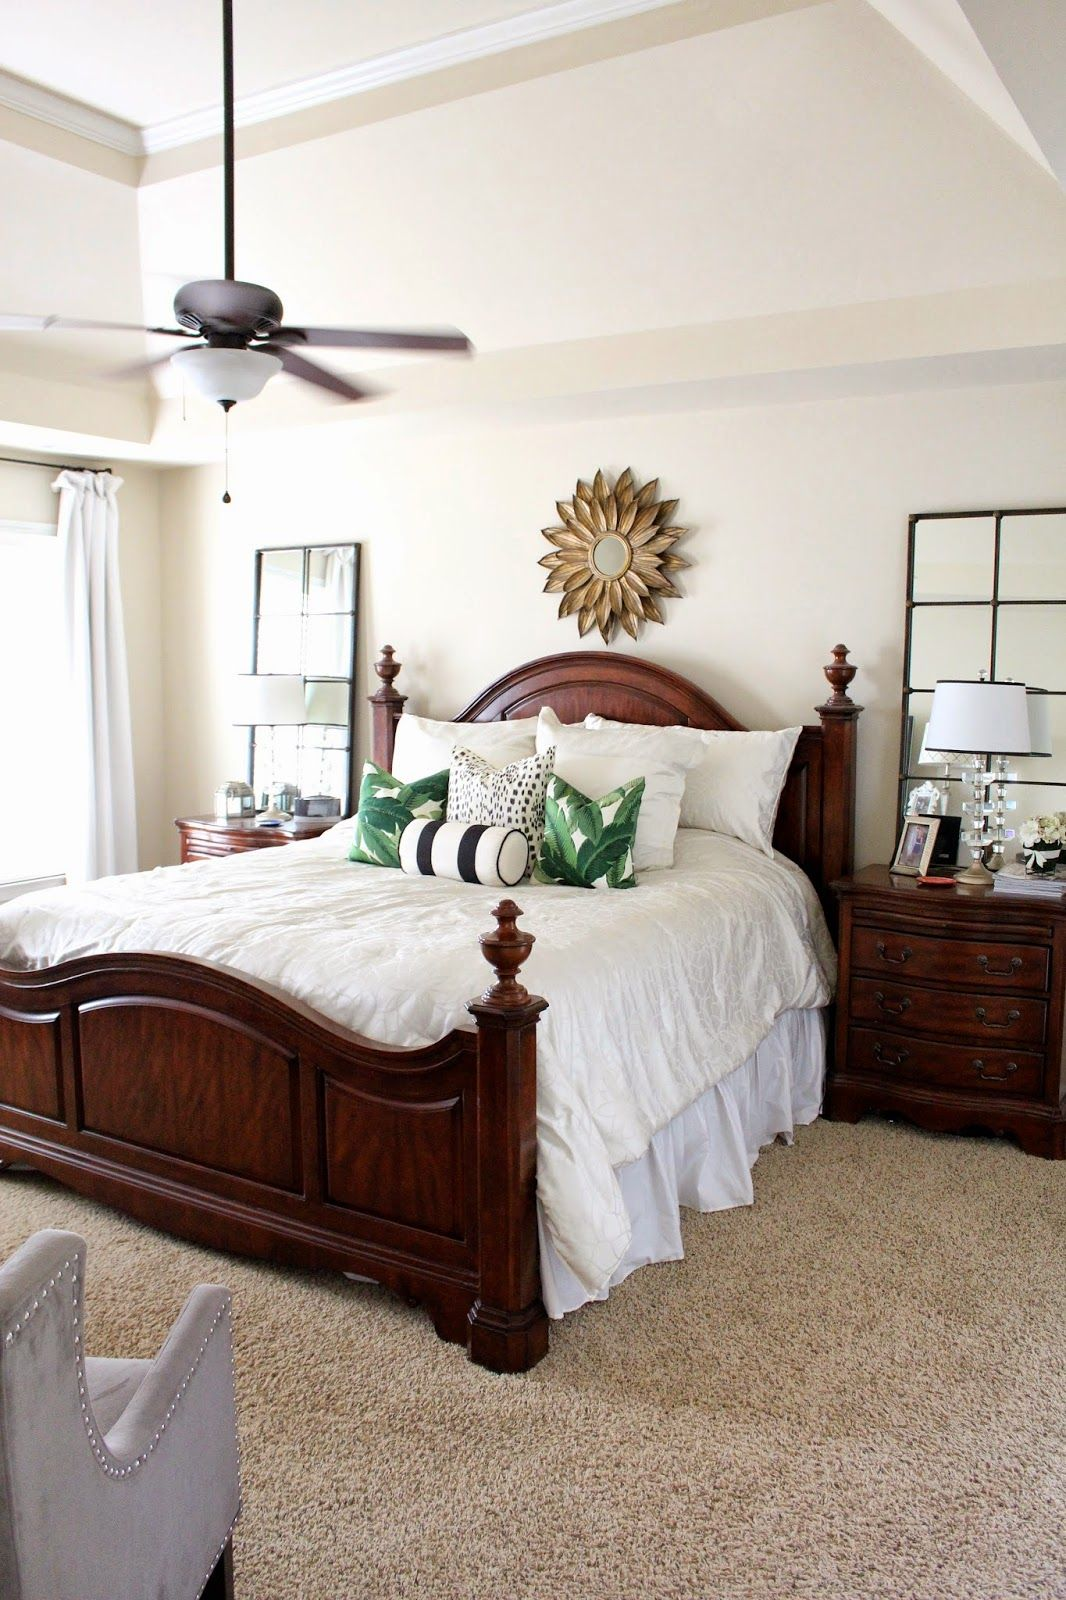 TiffanyD: Some Master Bedroom Details Decor Ideas   I Love The Idea Of  Splurging On A Great, Neutral Bedding Set So You Can Cheaply Change Up The  Feel Of ...